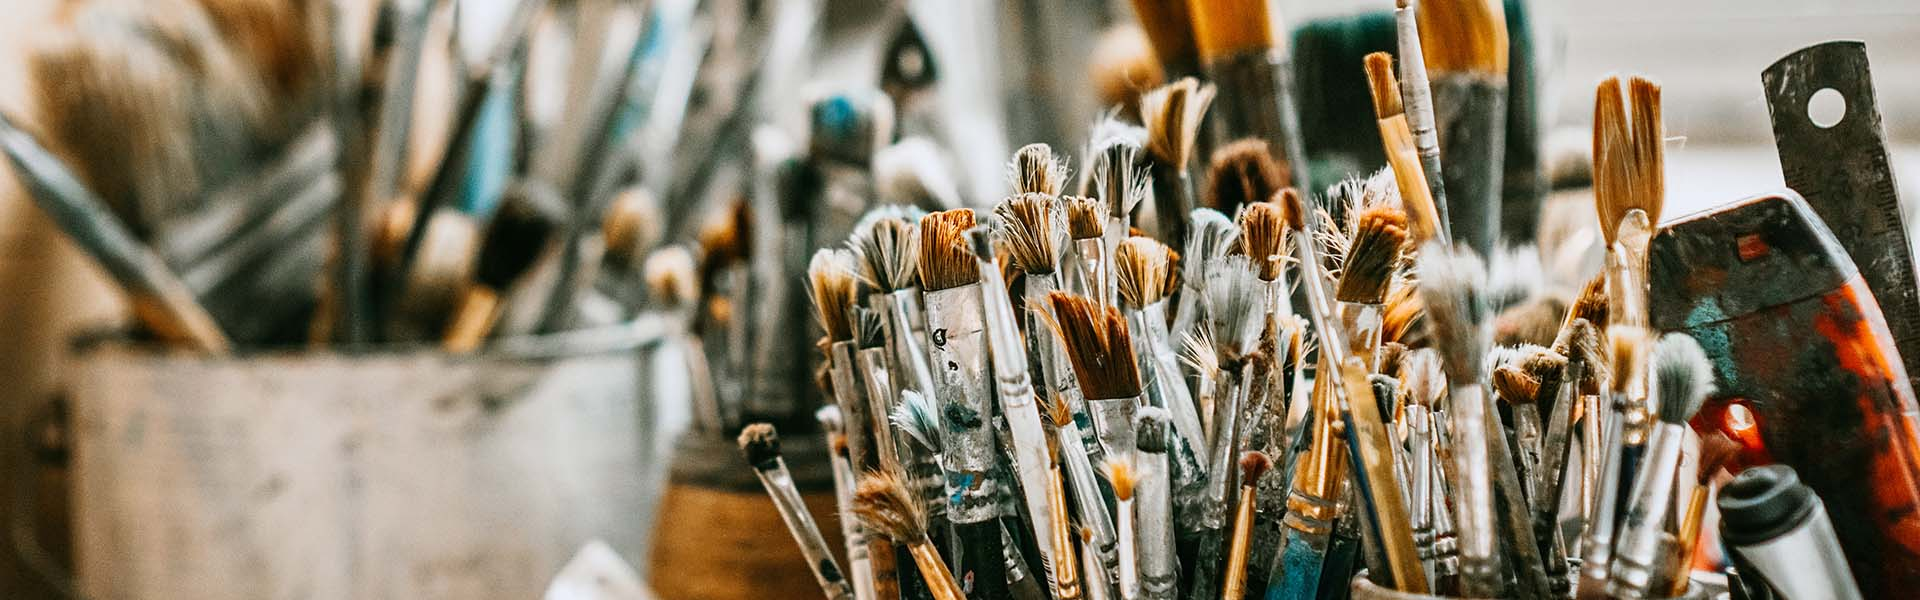 Table with brushes and tools in an artist's studio